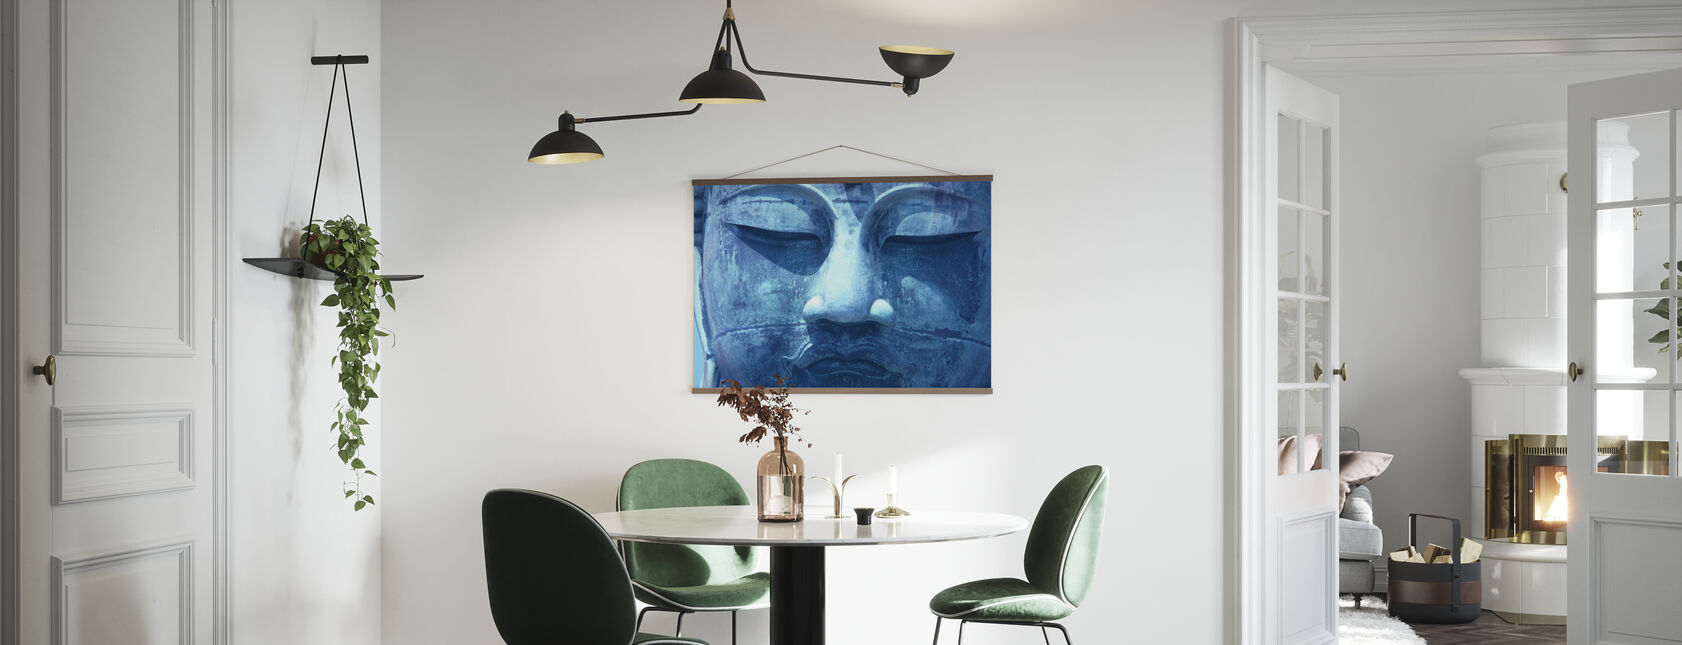 Blue Buddha - Poster - Kitchen